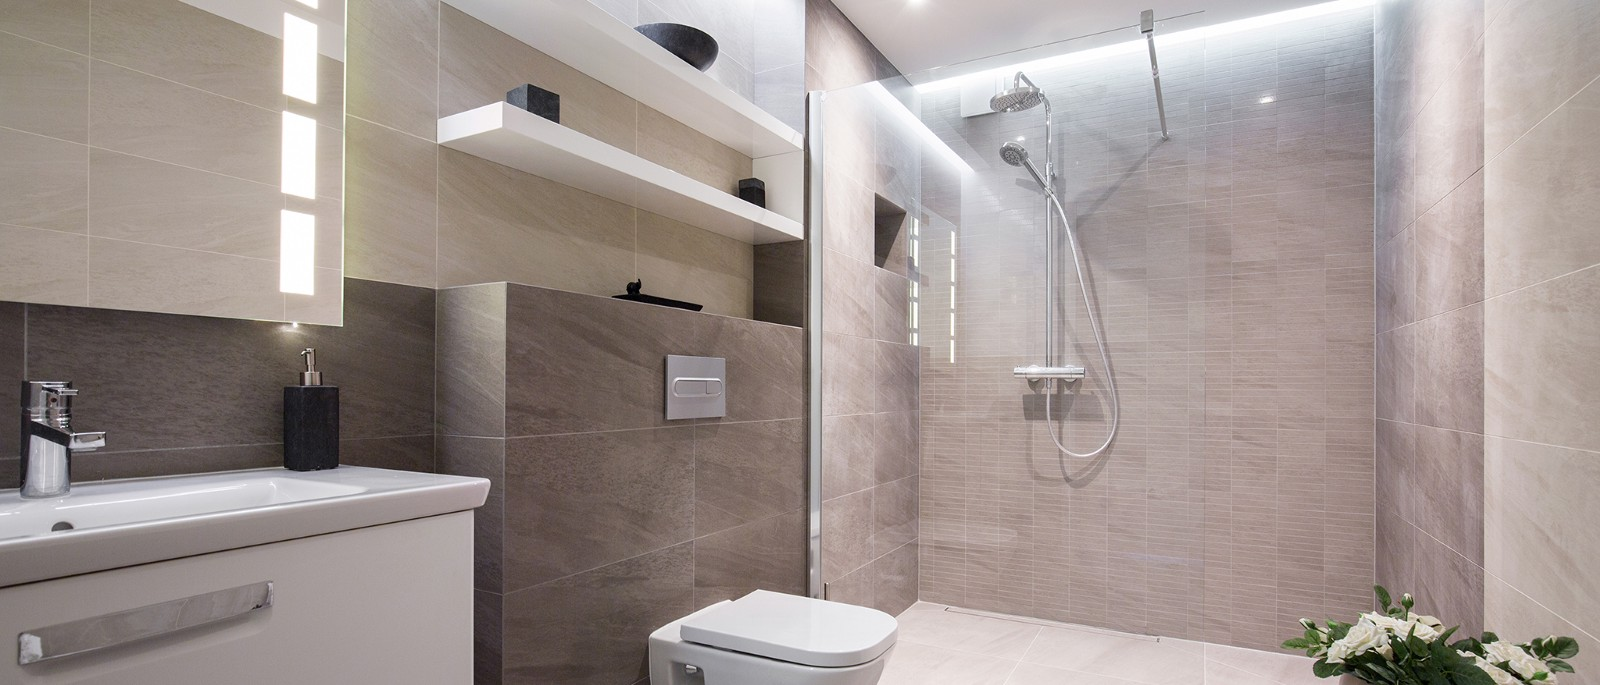 Another Reason To Choose Led Bathroom Lighting Is The Fact That Environment In A Rough On Fixtures Moisture From Hot Bath